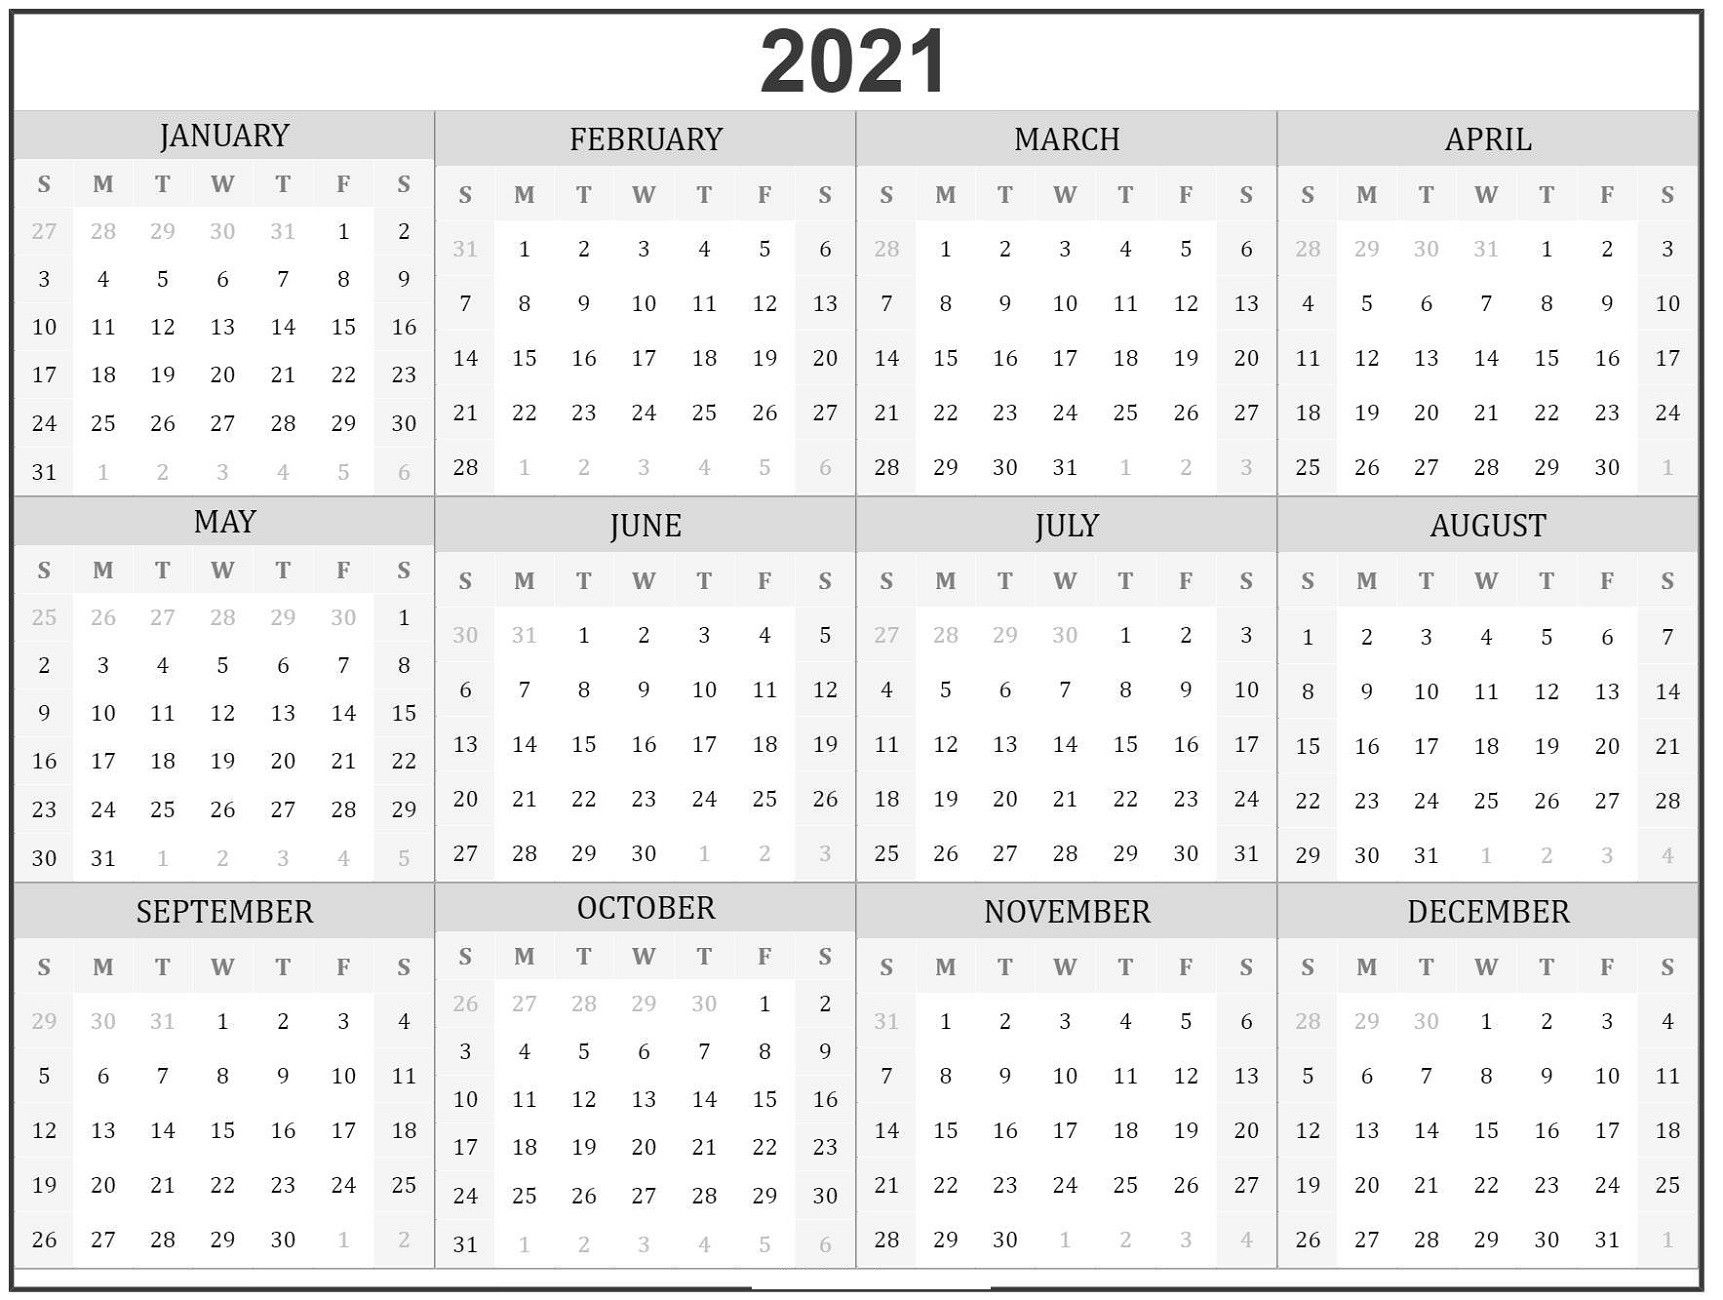 3 Month Calendar 2021 Printable Free To Take  Delightful in Blank Printable Calendars 3 Month 2021